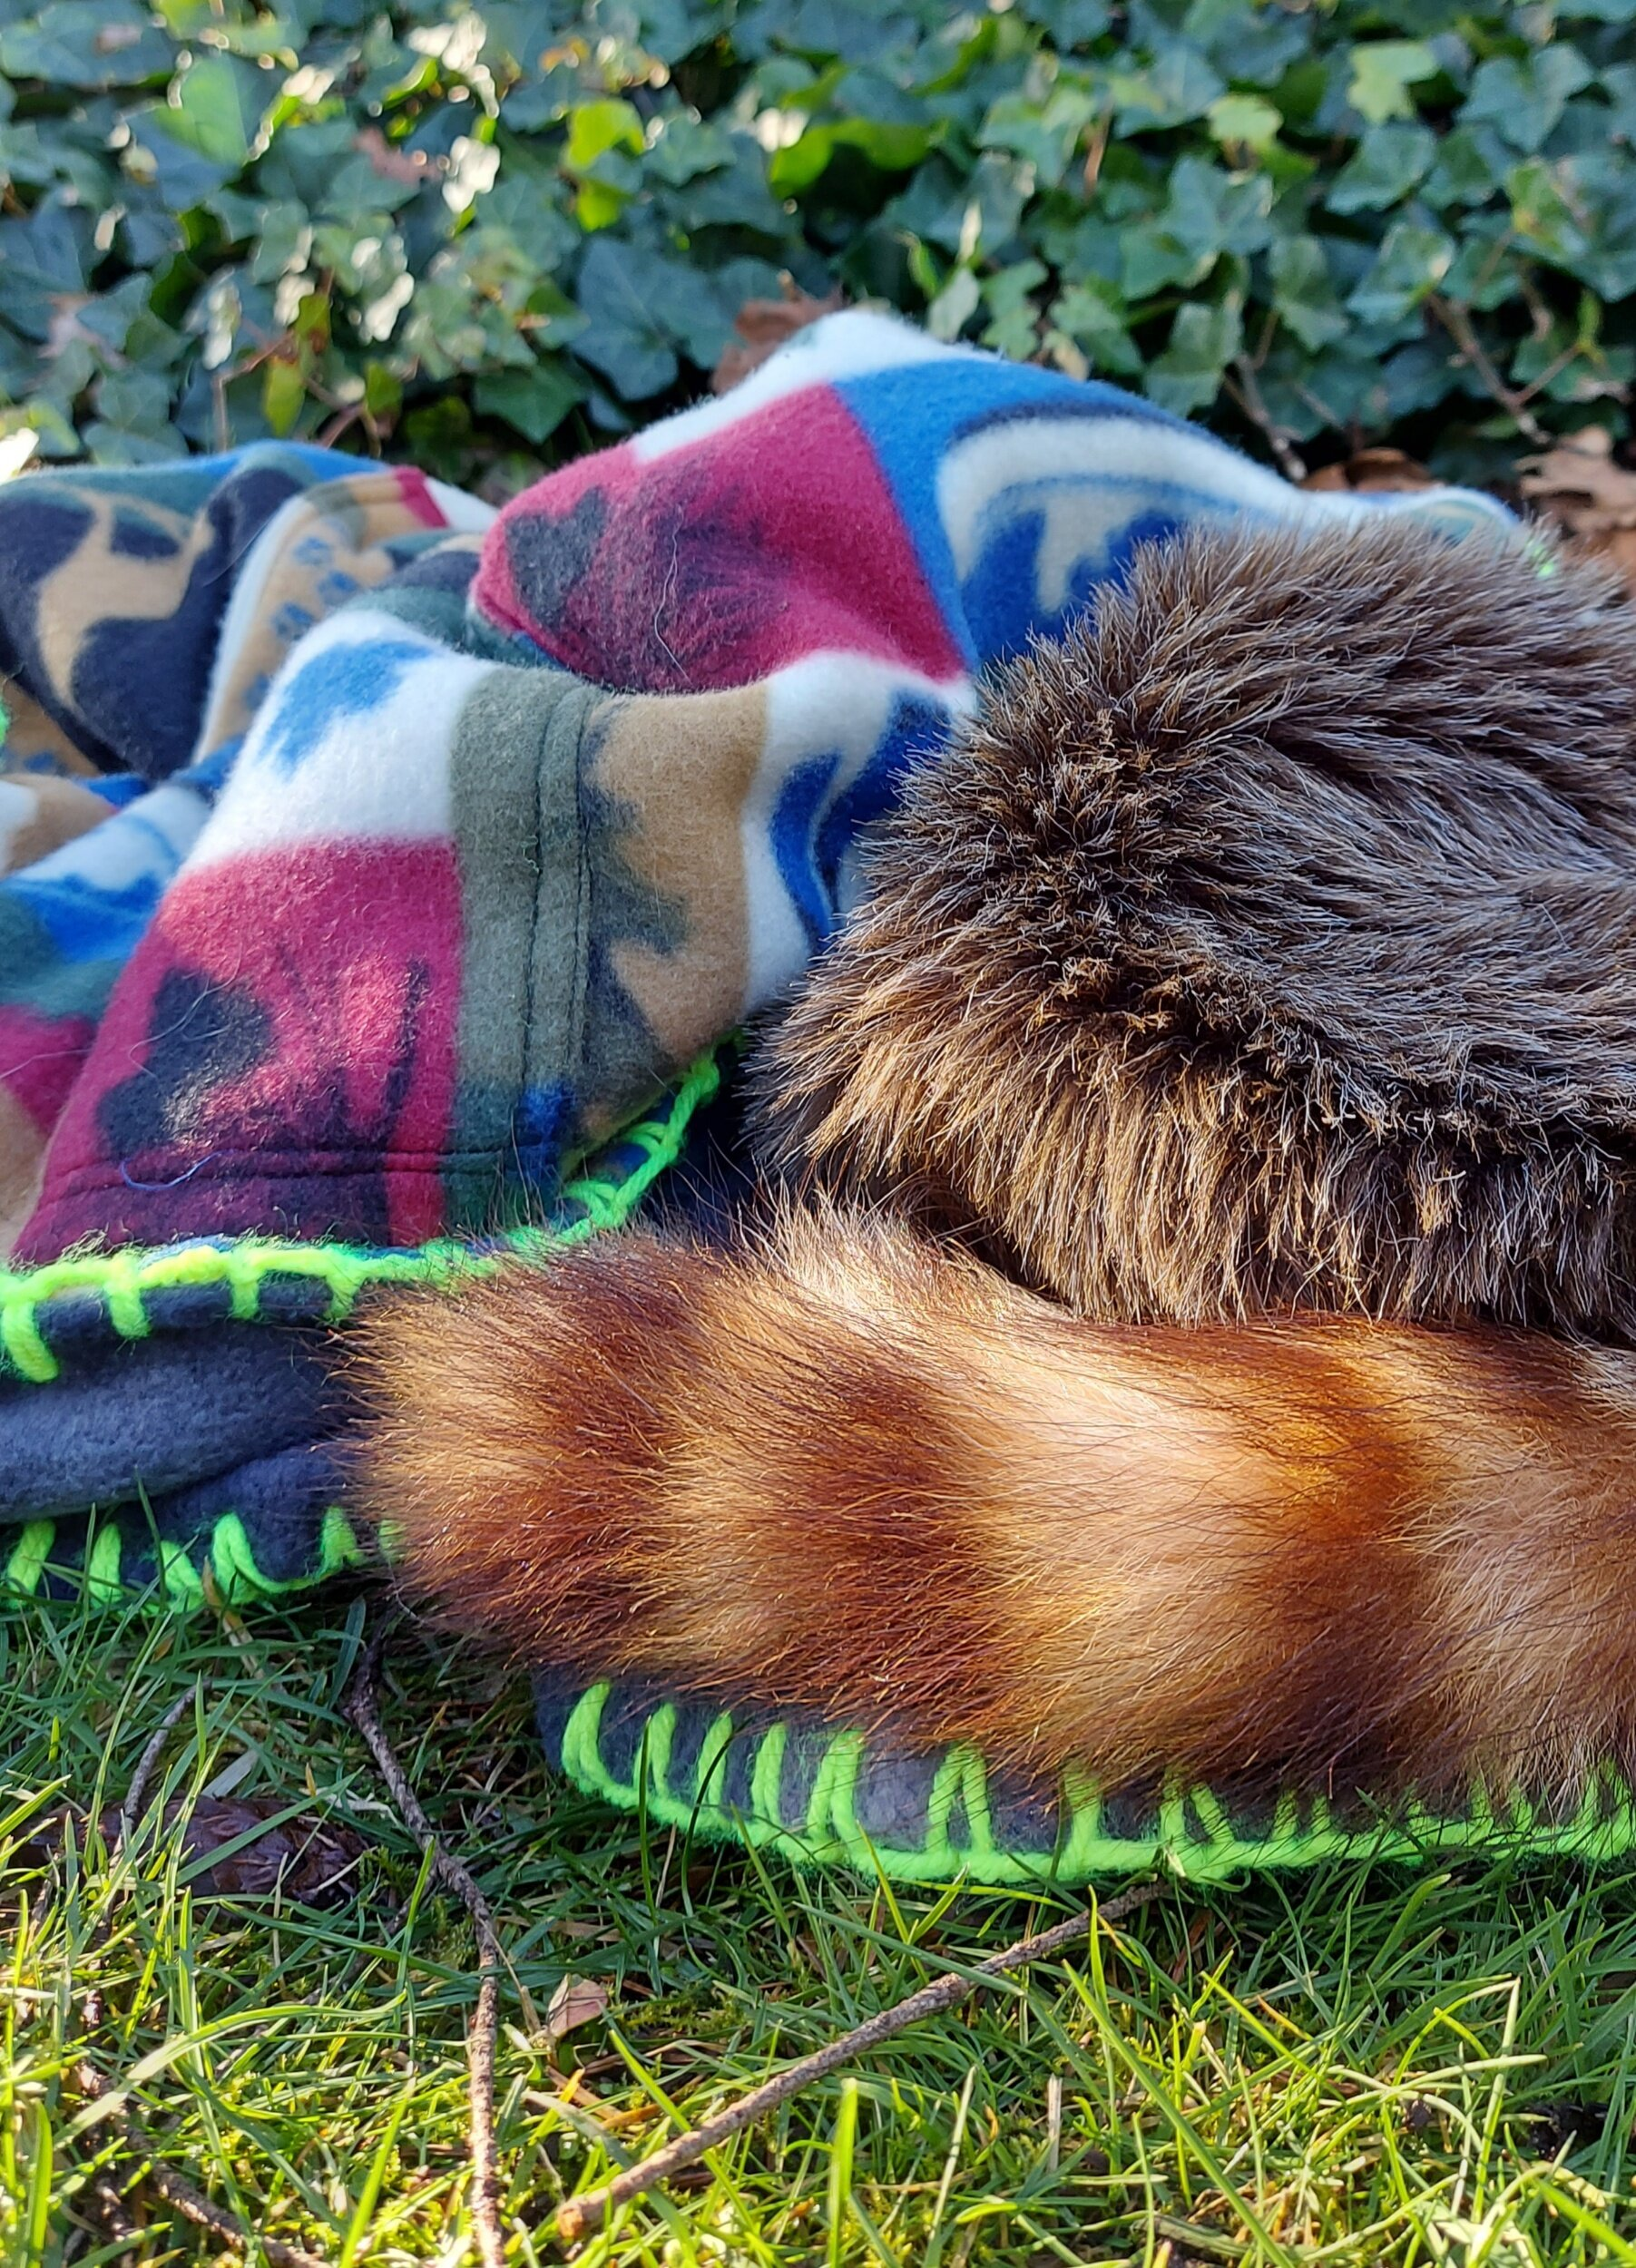 adventure blanket piled up on the grass with raccoon skin cap on top